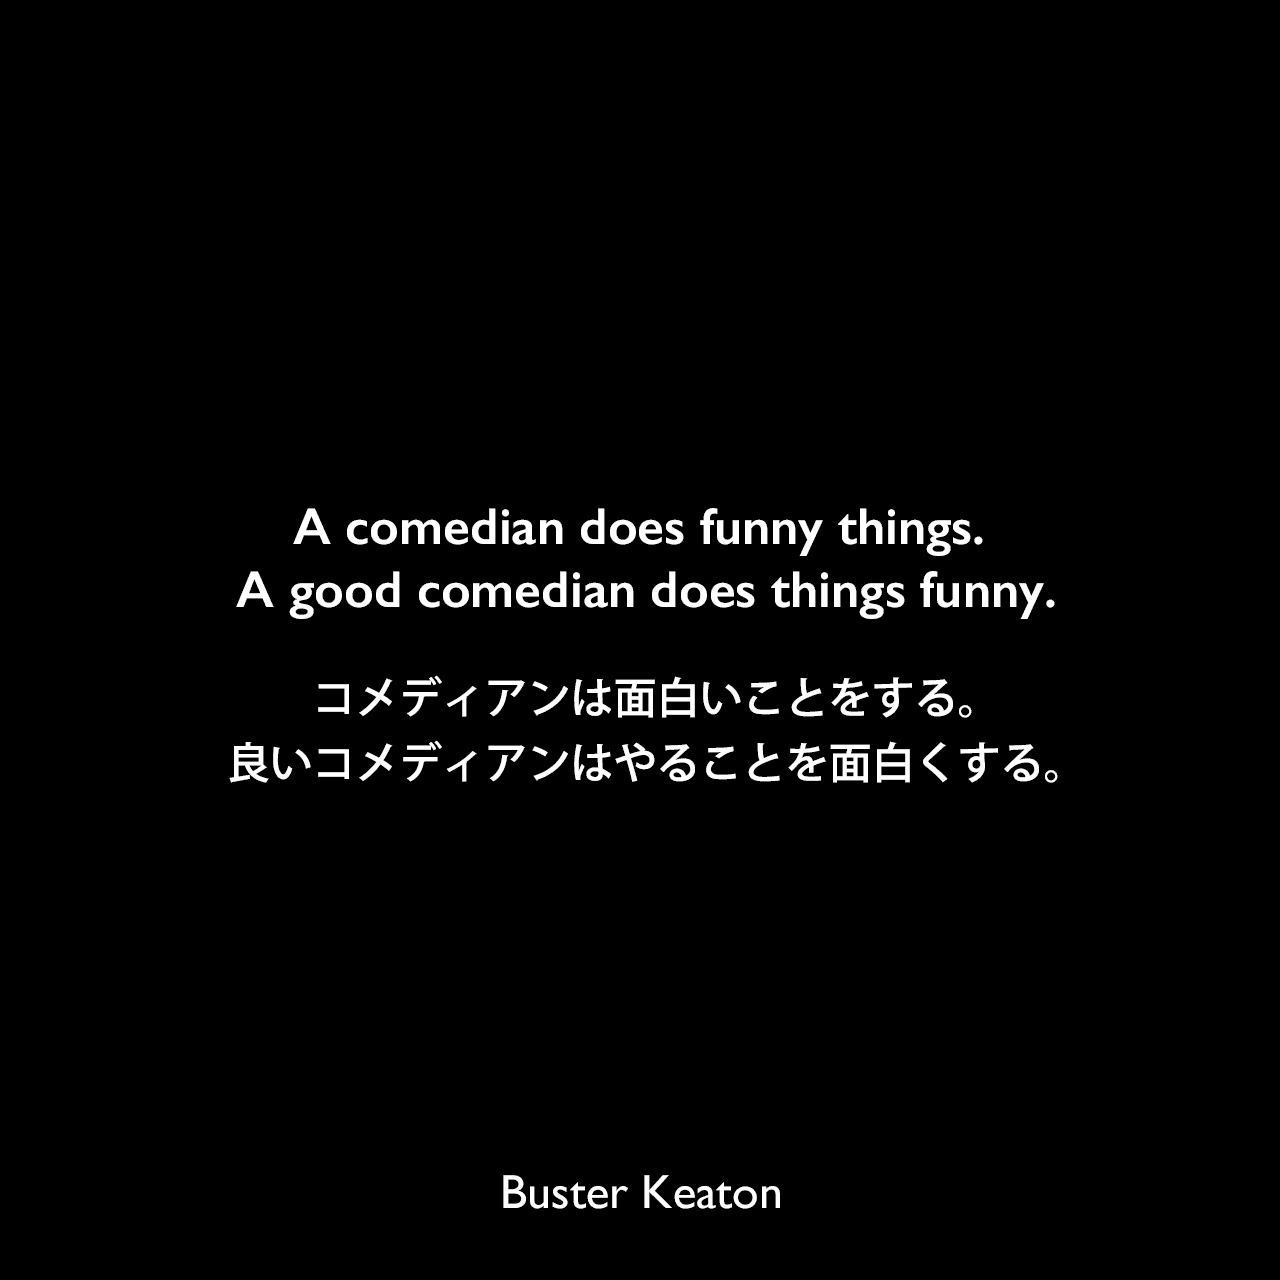 A comedian does funny things. A good comedian does things funny.コメディアンは面白いことをする。良いコメディアンはやることを面白くする。Buster Keaton